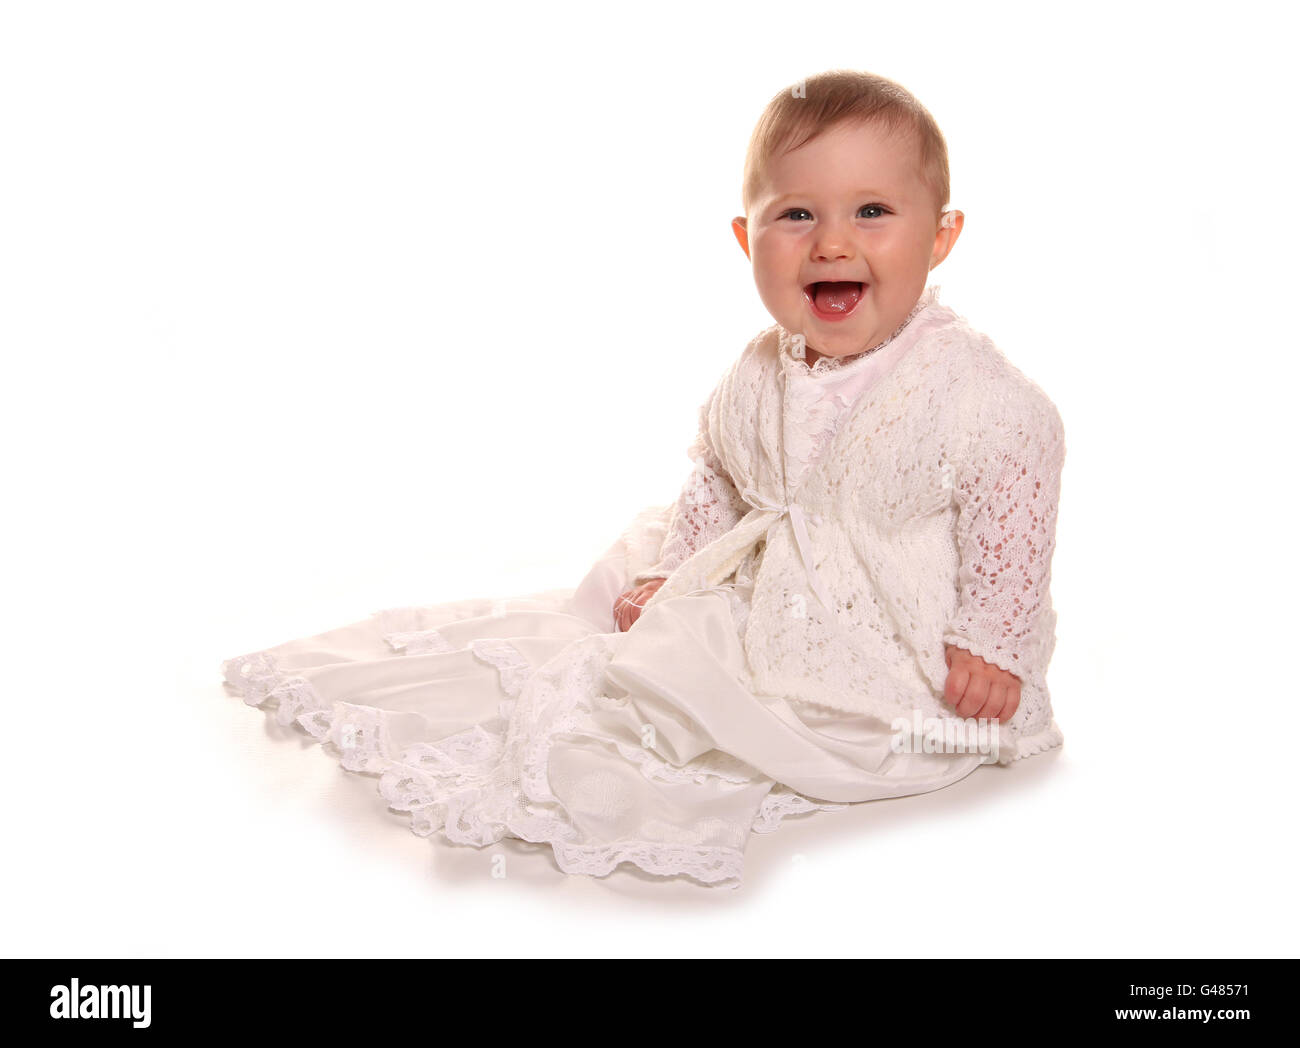 Baby girl in christening gown cutout - Stock Image